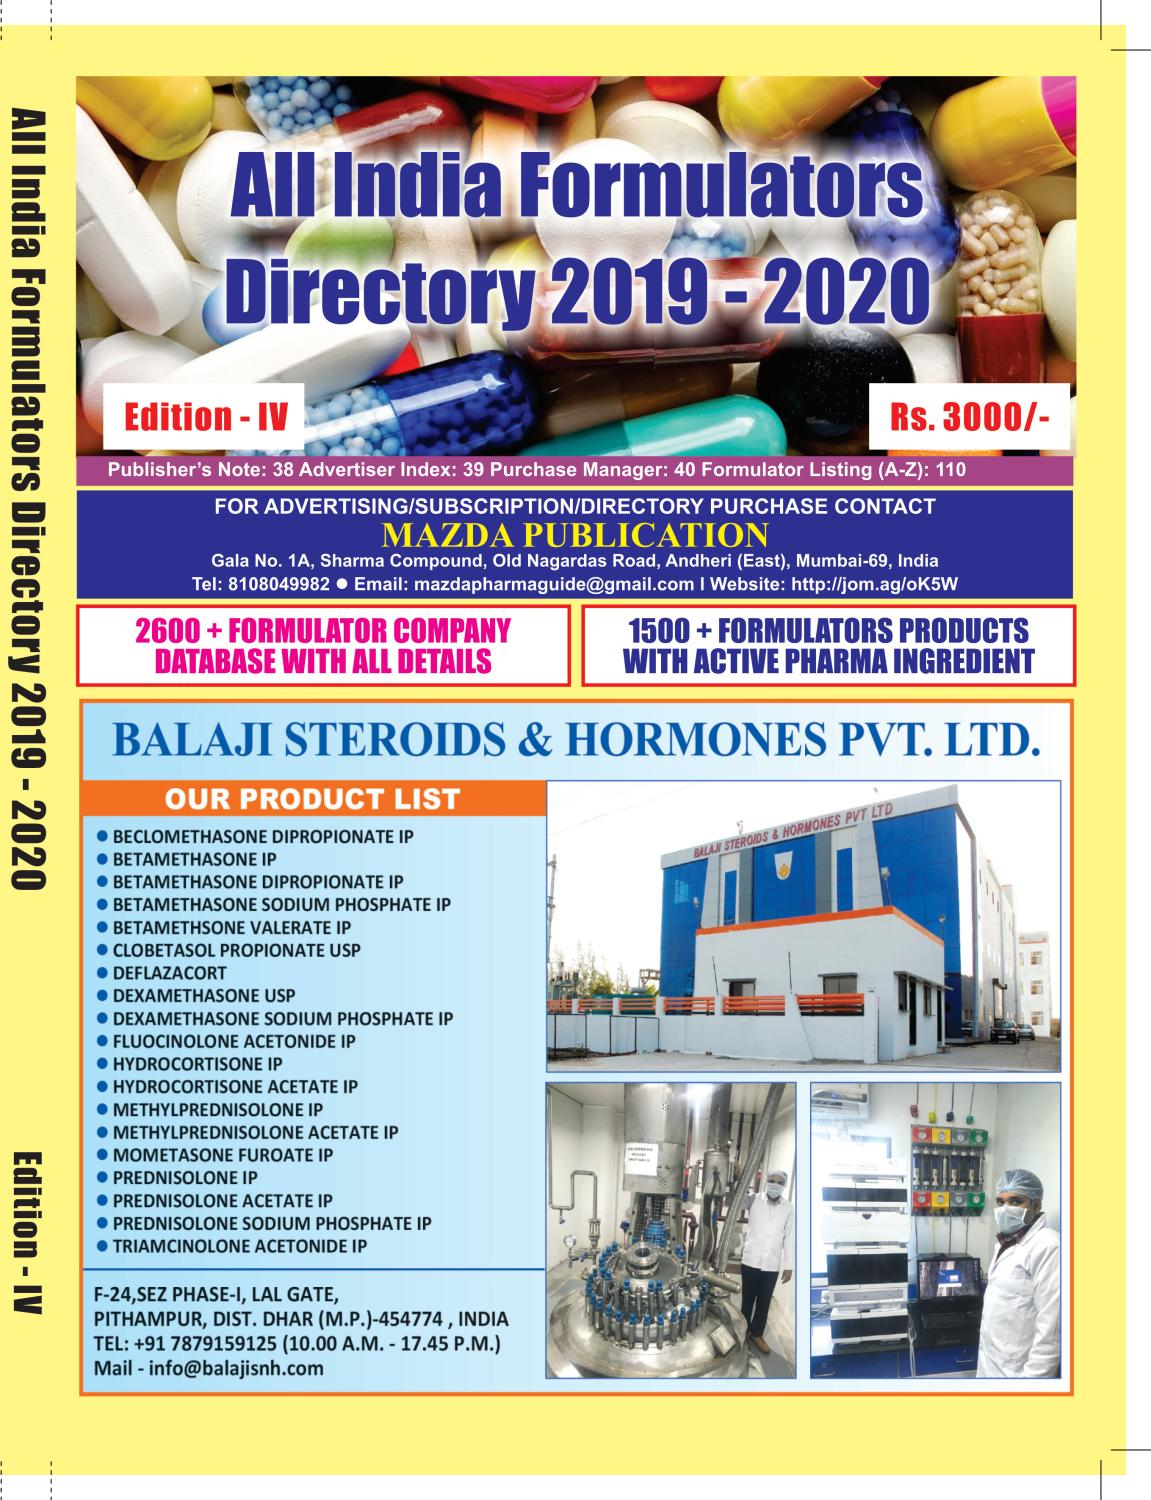 All India Formulators Directory 2019 - 2020 by The Mazada